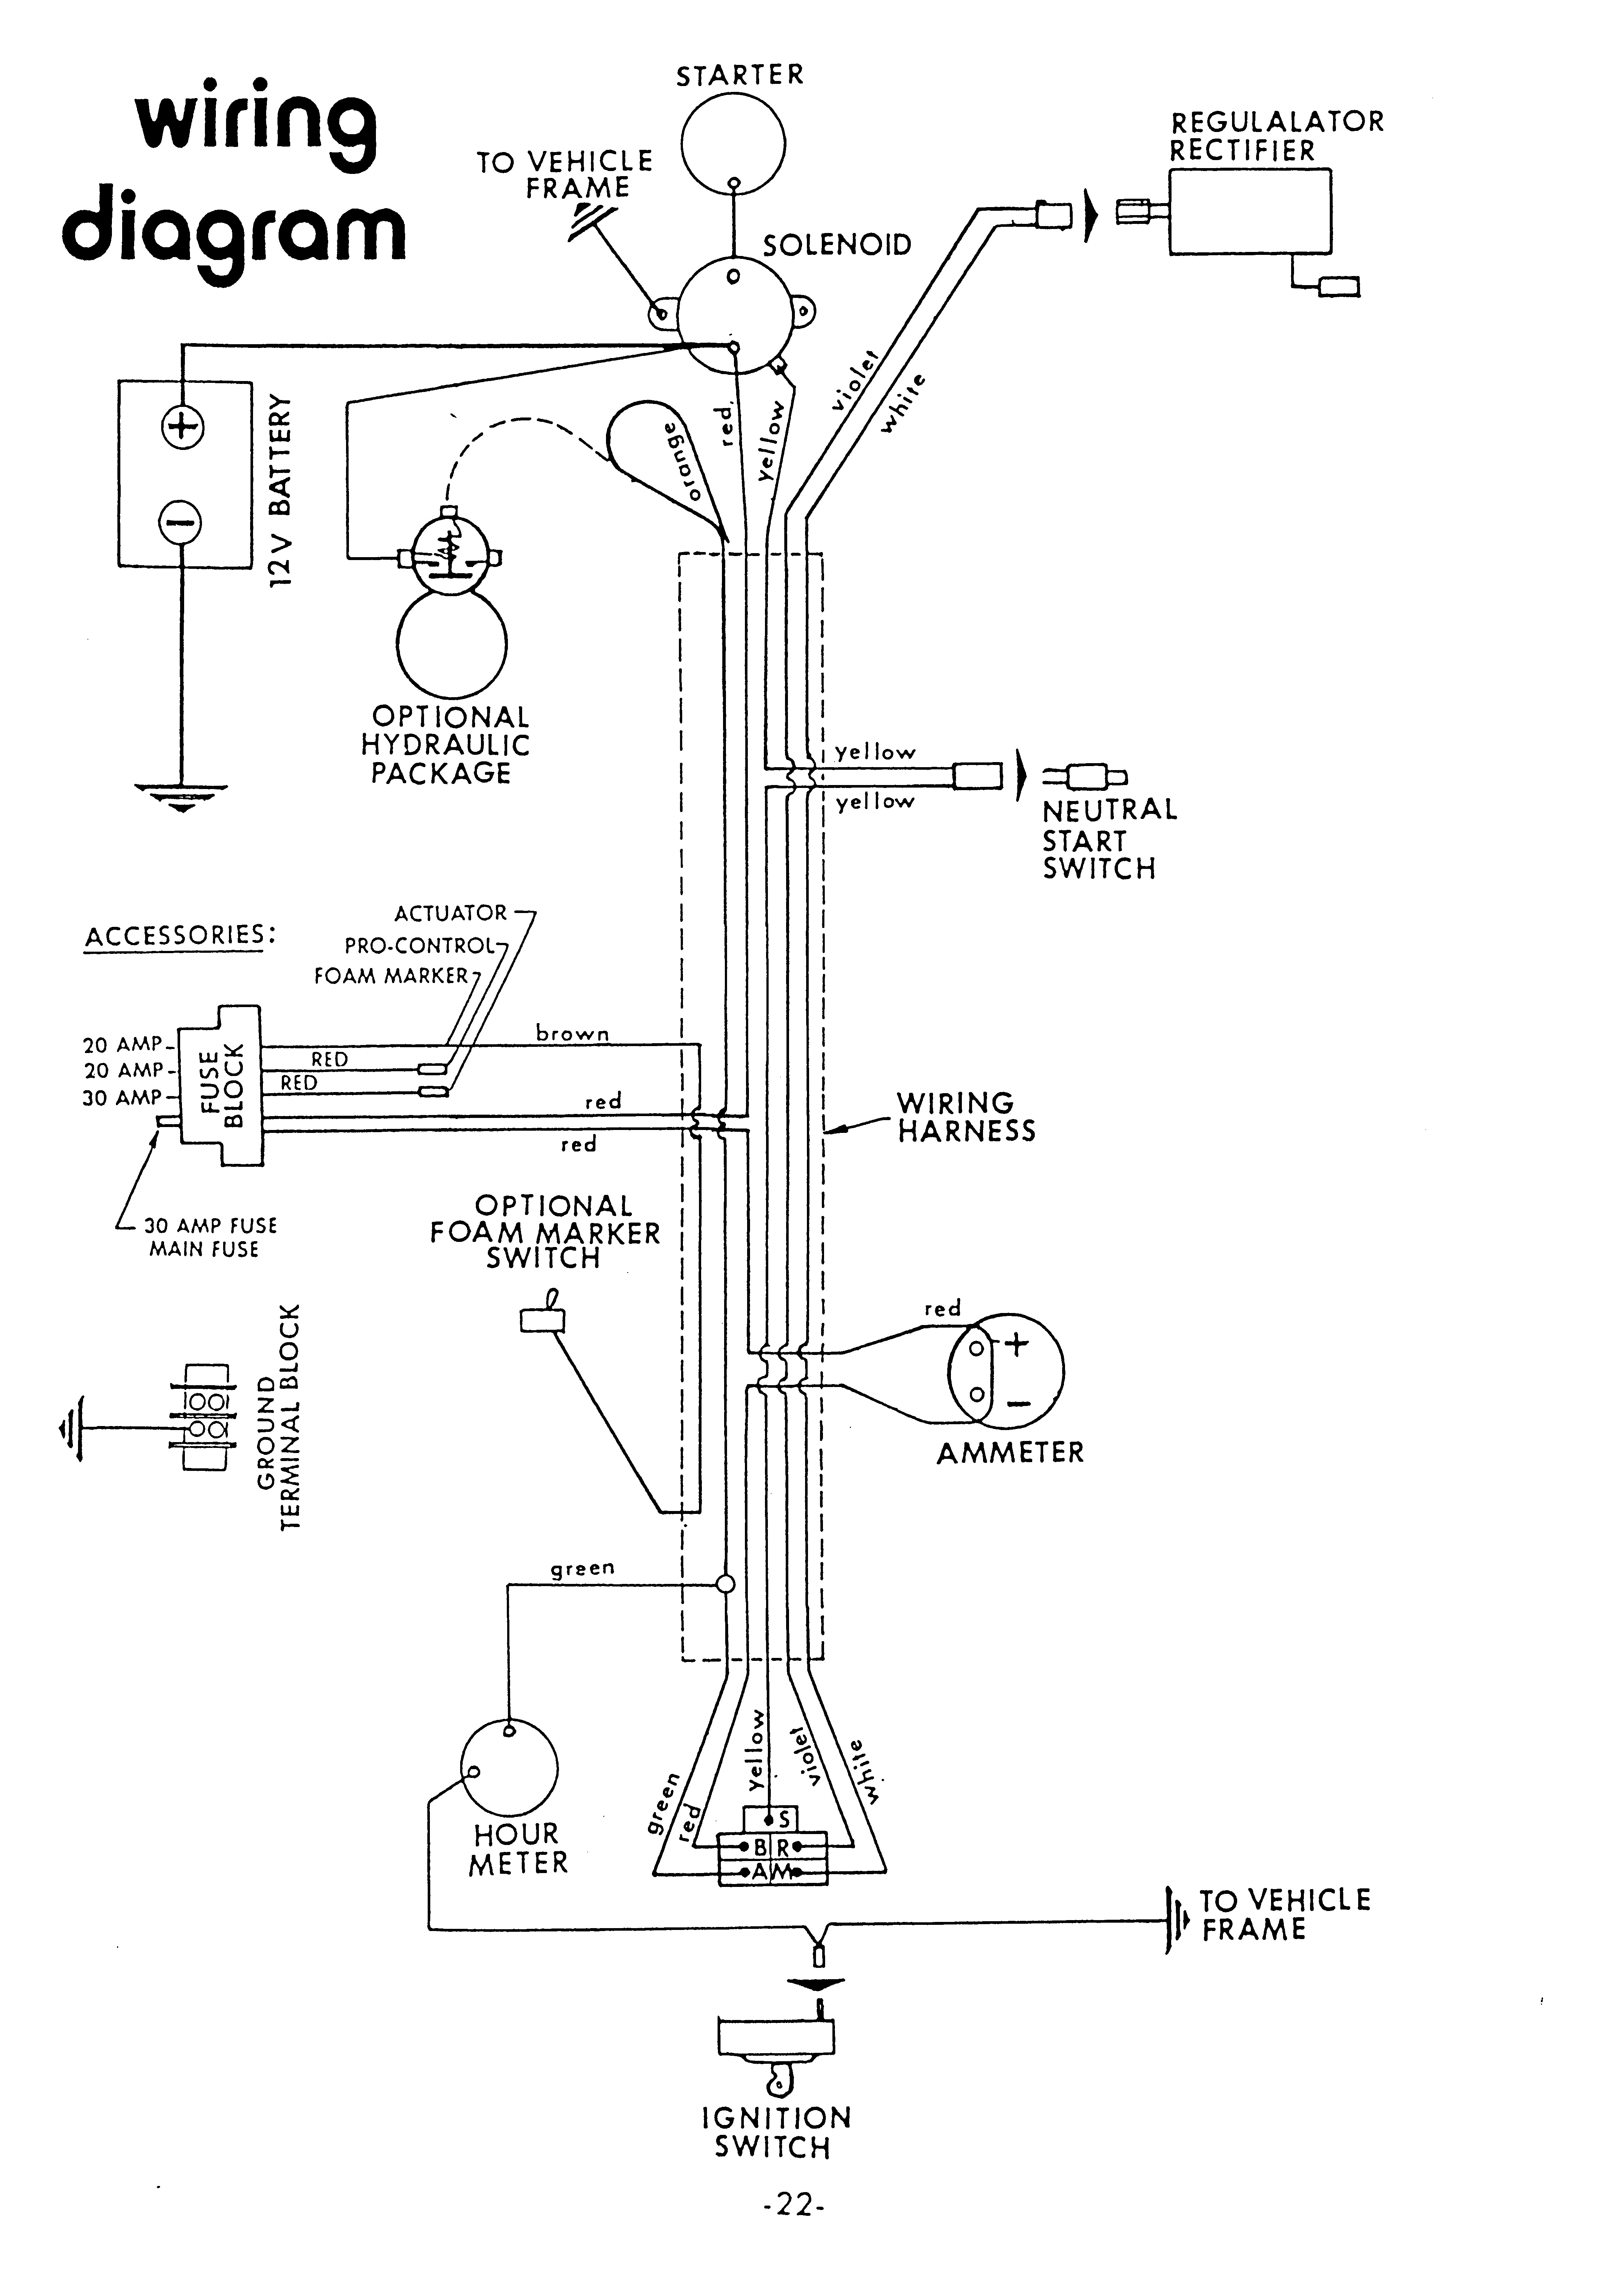 kohler small engine wiring diagram need help with briggs engine 25 HP Kohler Engine Parts hight resolution of kohler engine wiring diagrams free wiring diagram for you u2022 25 hp kohler